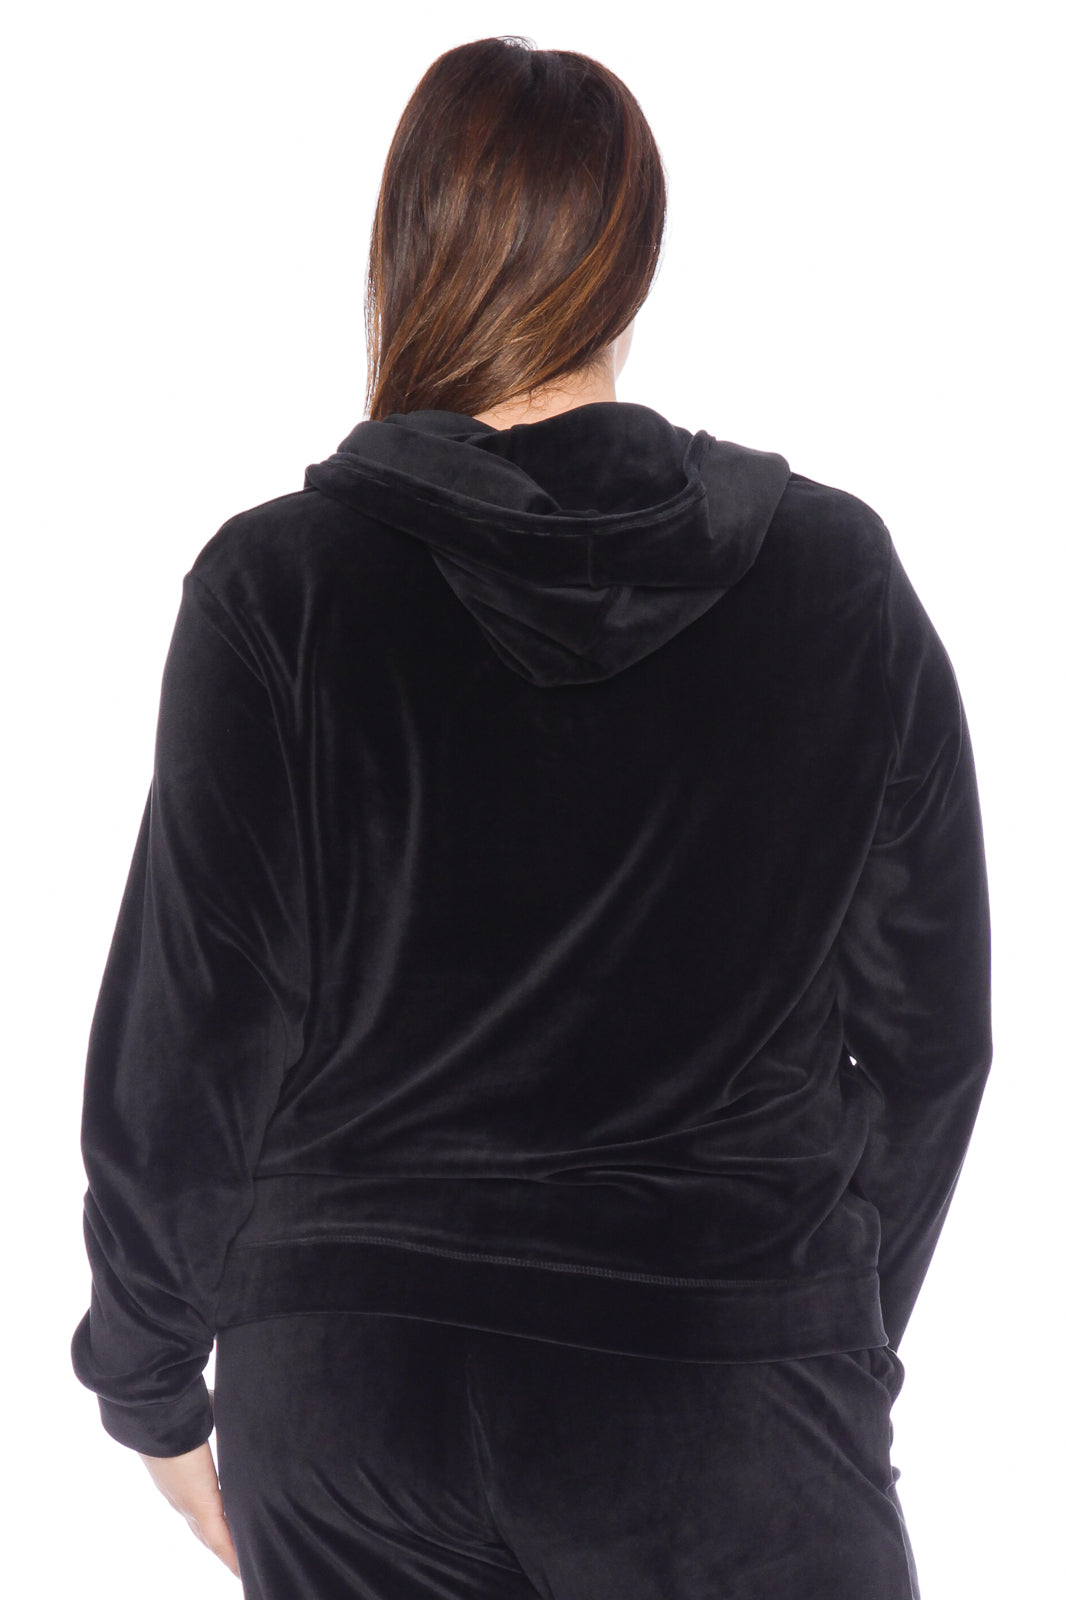 The Velour Zip-Up Hoodie - JET BLACK